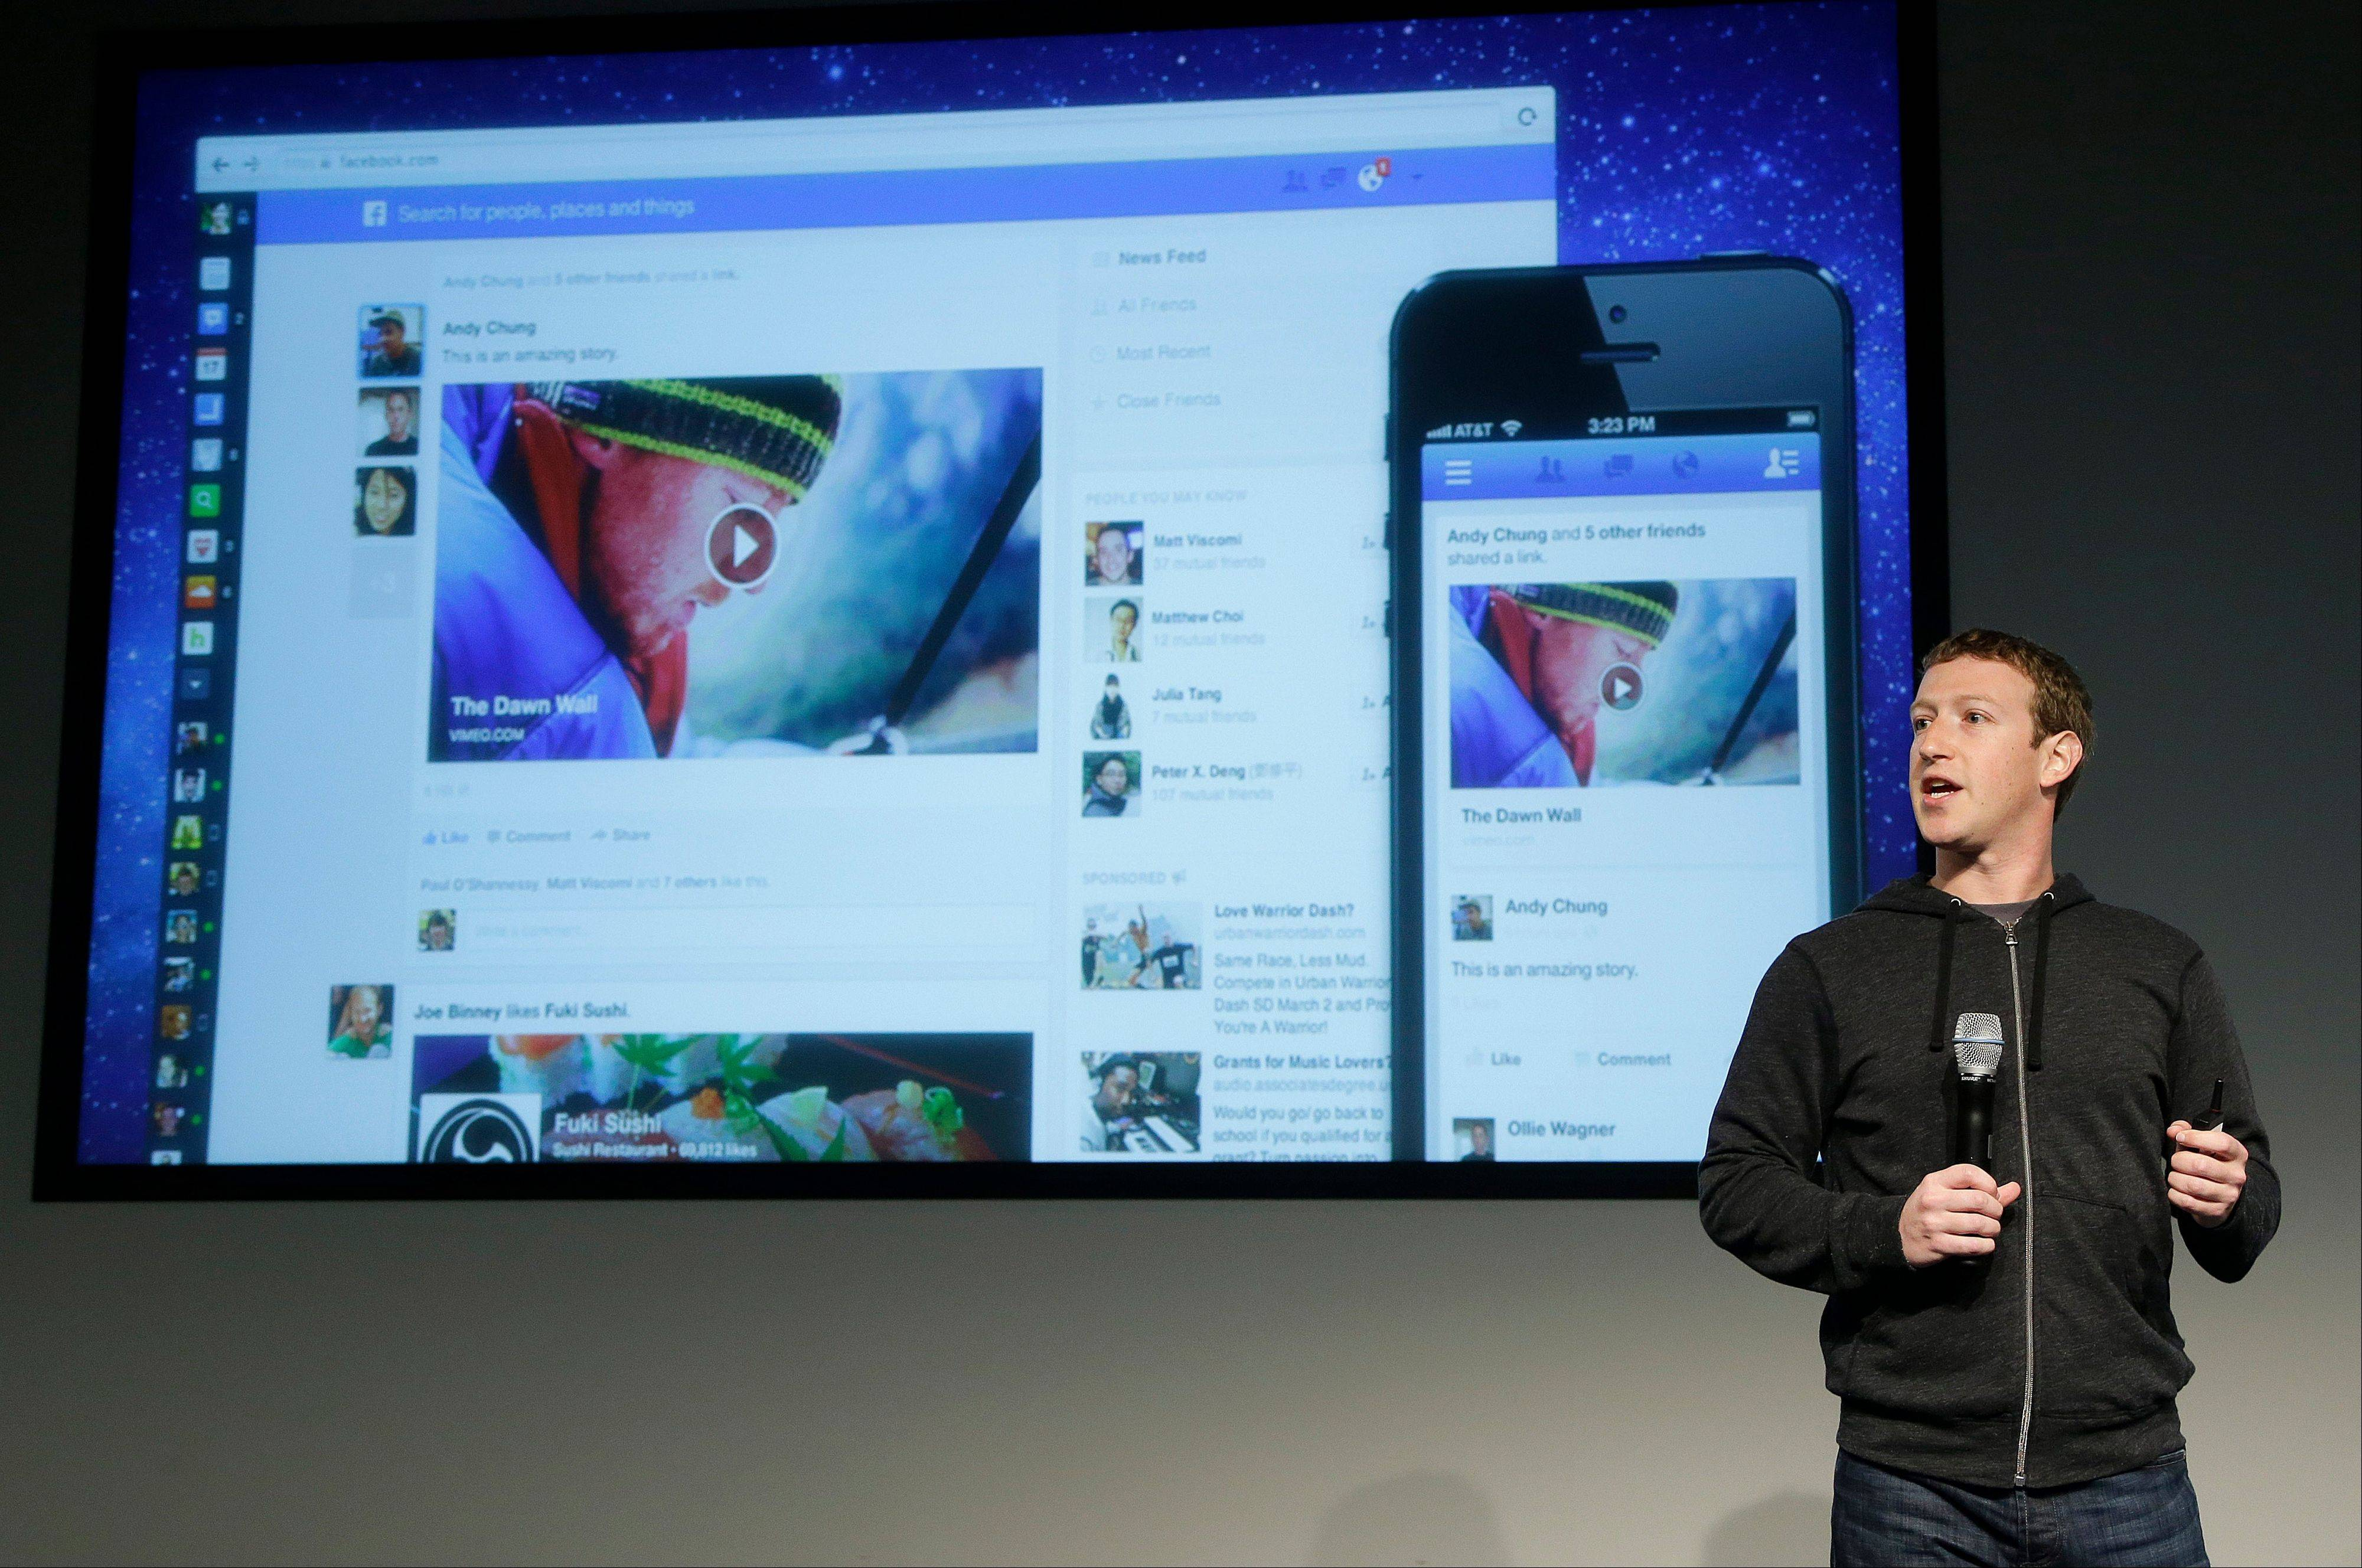 Facebook CEO Mark Zuckerberg unveils a new look for the social network's News Feed, the place where its 1 billion users congregate to see what's happening with their friends, family and favorite businesses. He spoke at Facebook headquarters in Menlo Park, Calif., Thursday.